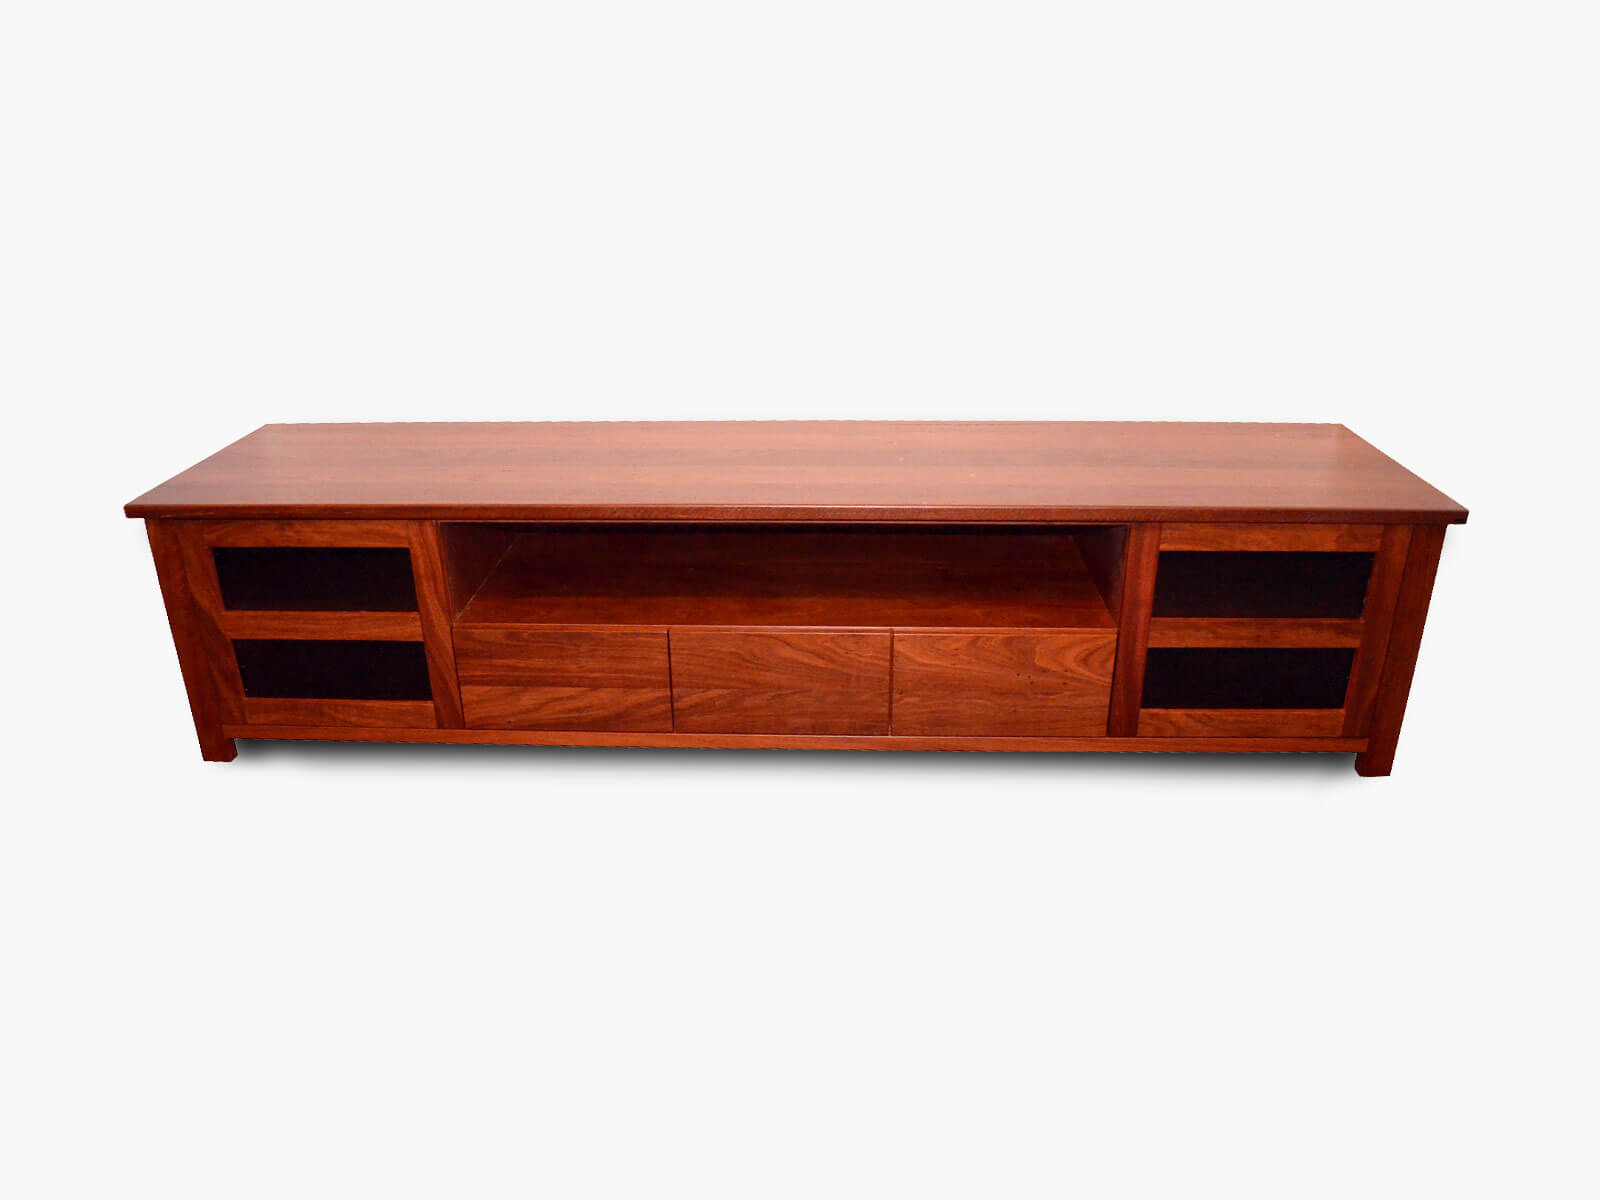 Napier-Recycled-TV Timber Furniture